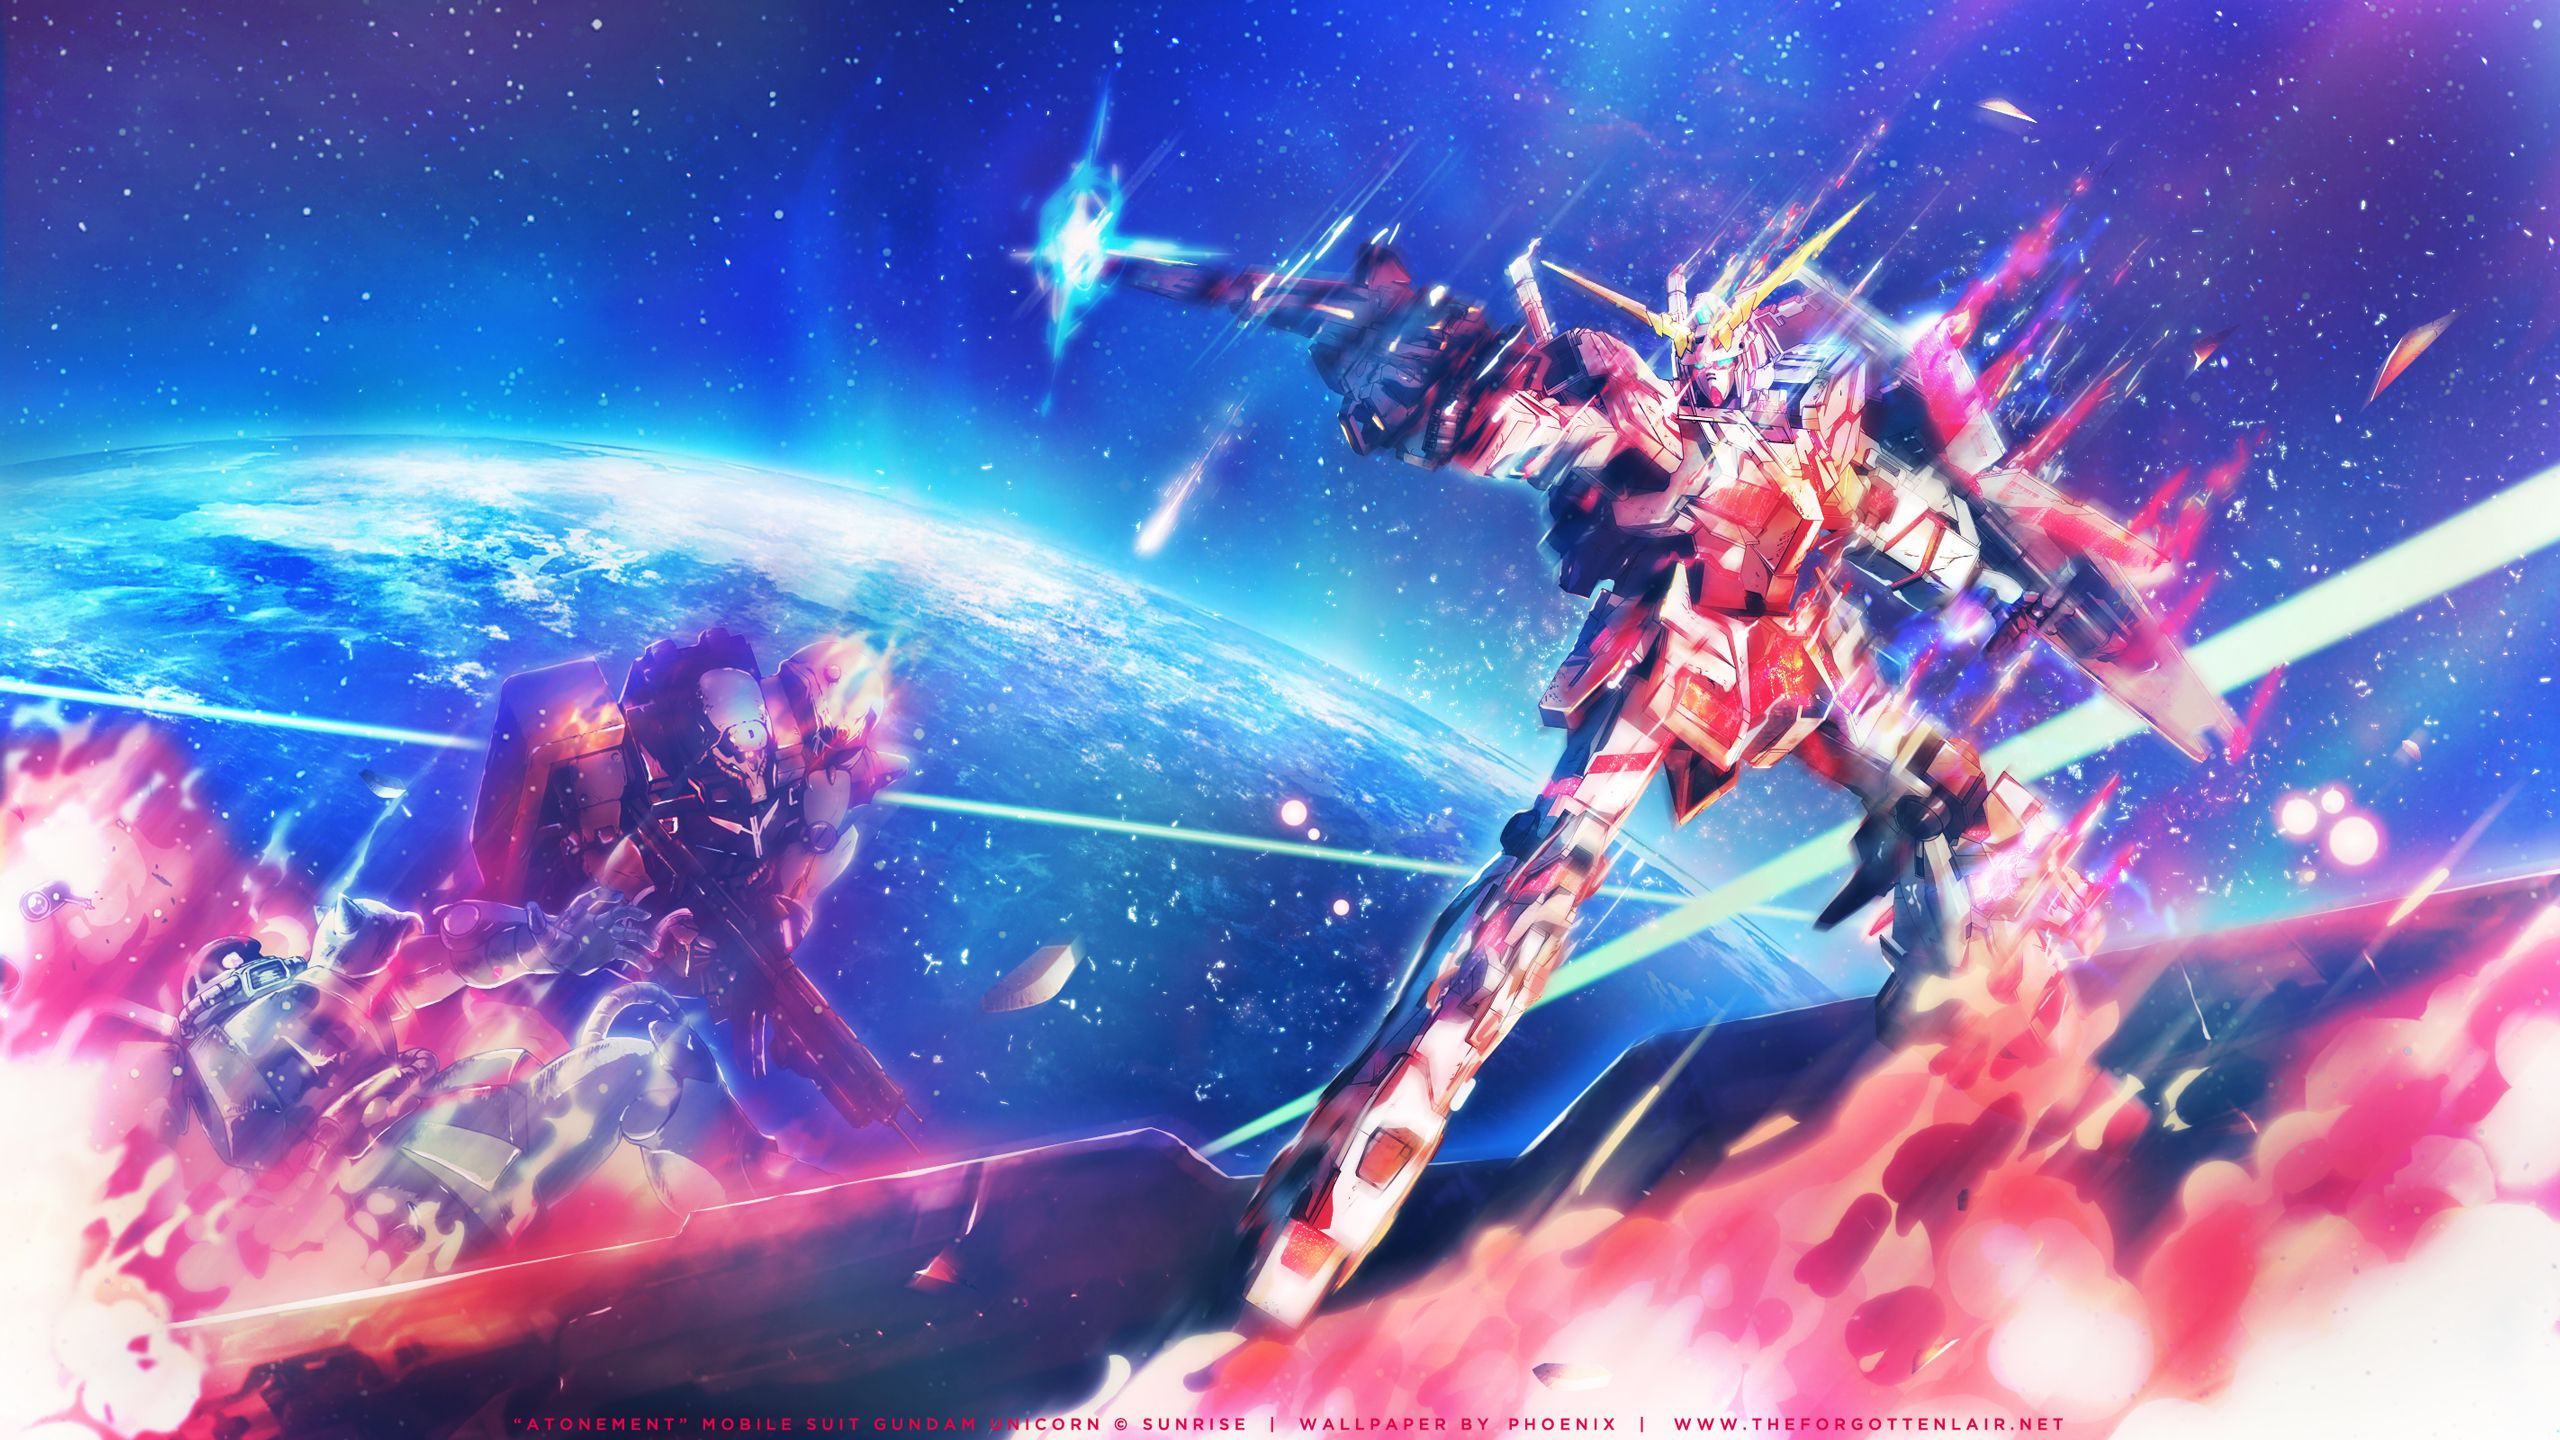 4k Gundam Wallpaper 00 7 Sword In 2020 Gundam Gundam Wallpapers Gundam Art